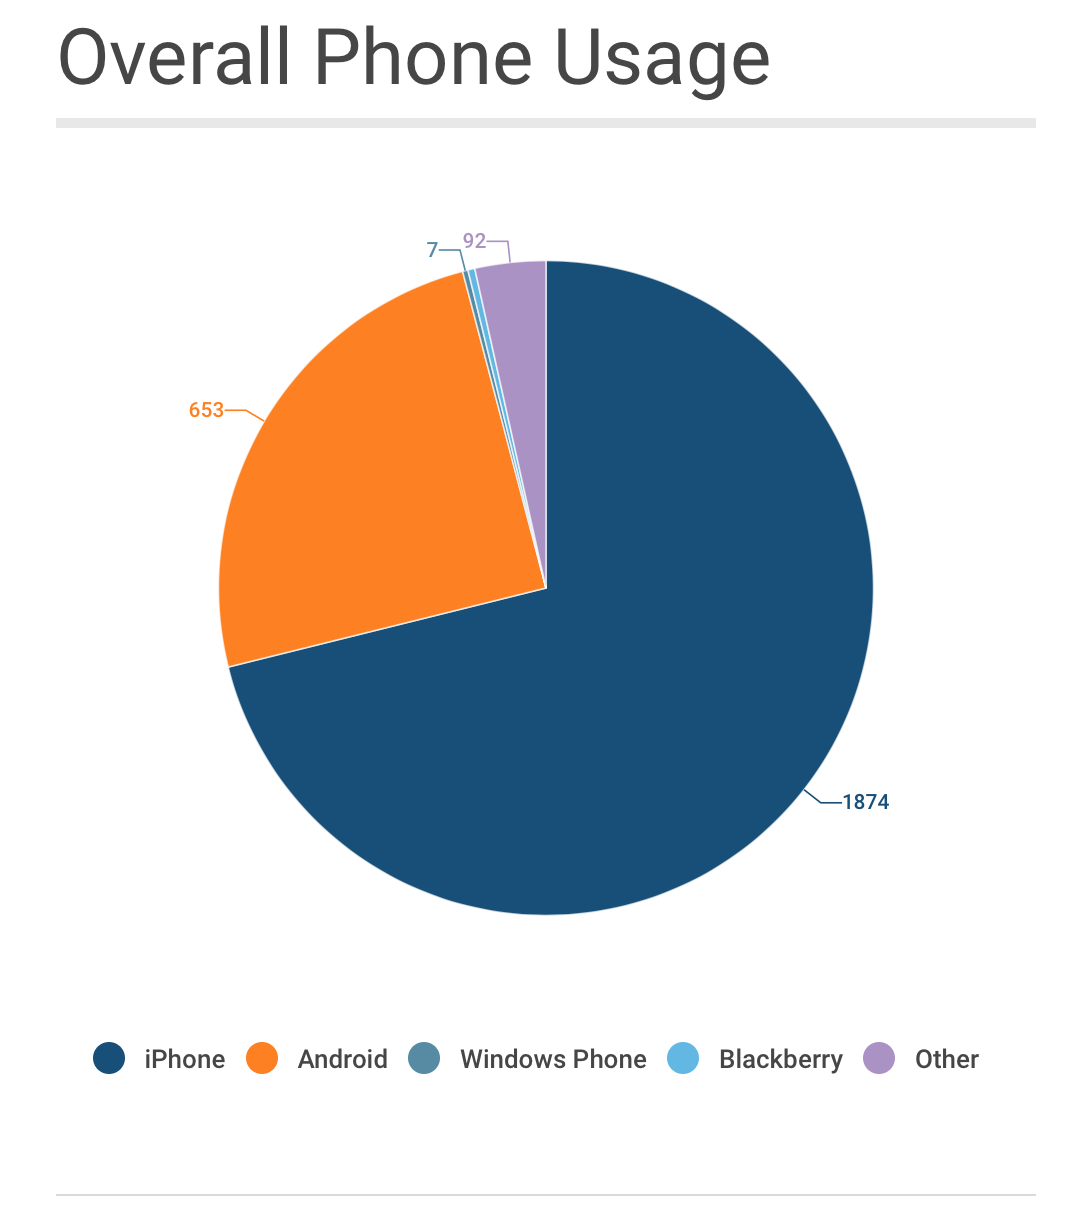 Overall Phone Usage